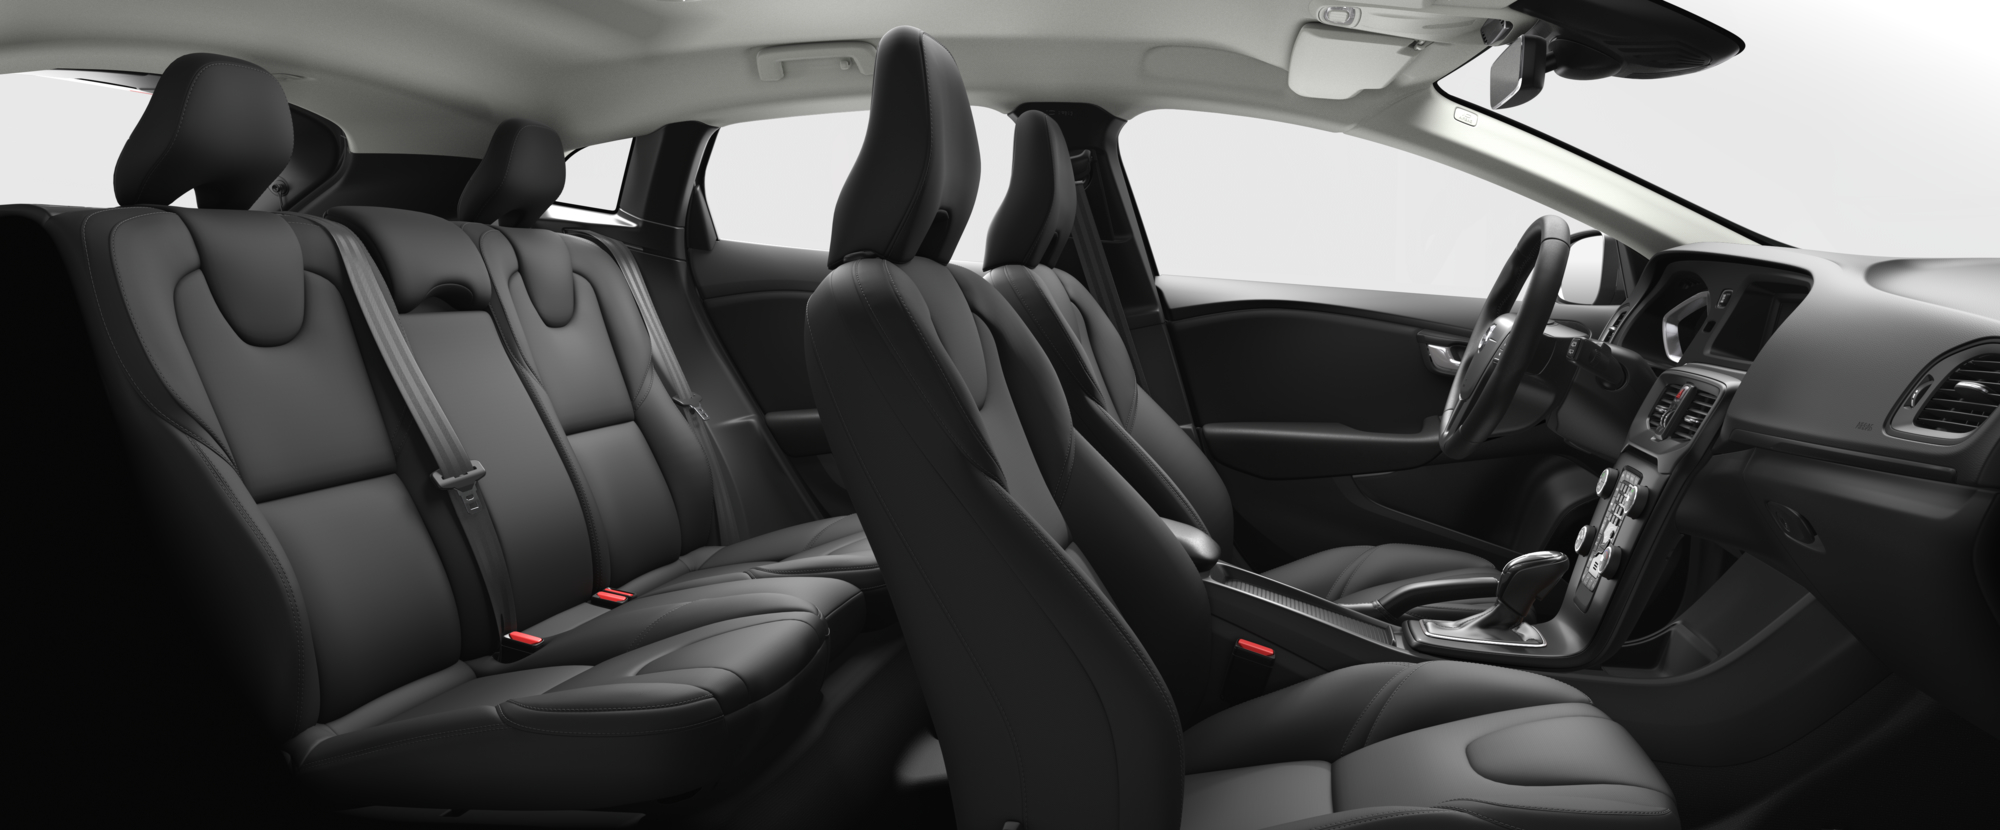 Interior shot of the Volvo V40 Cross Country with Charcoal Textile Seats